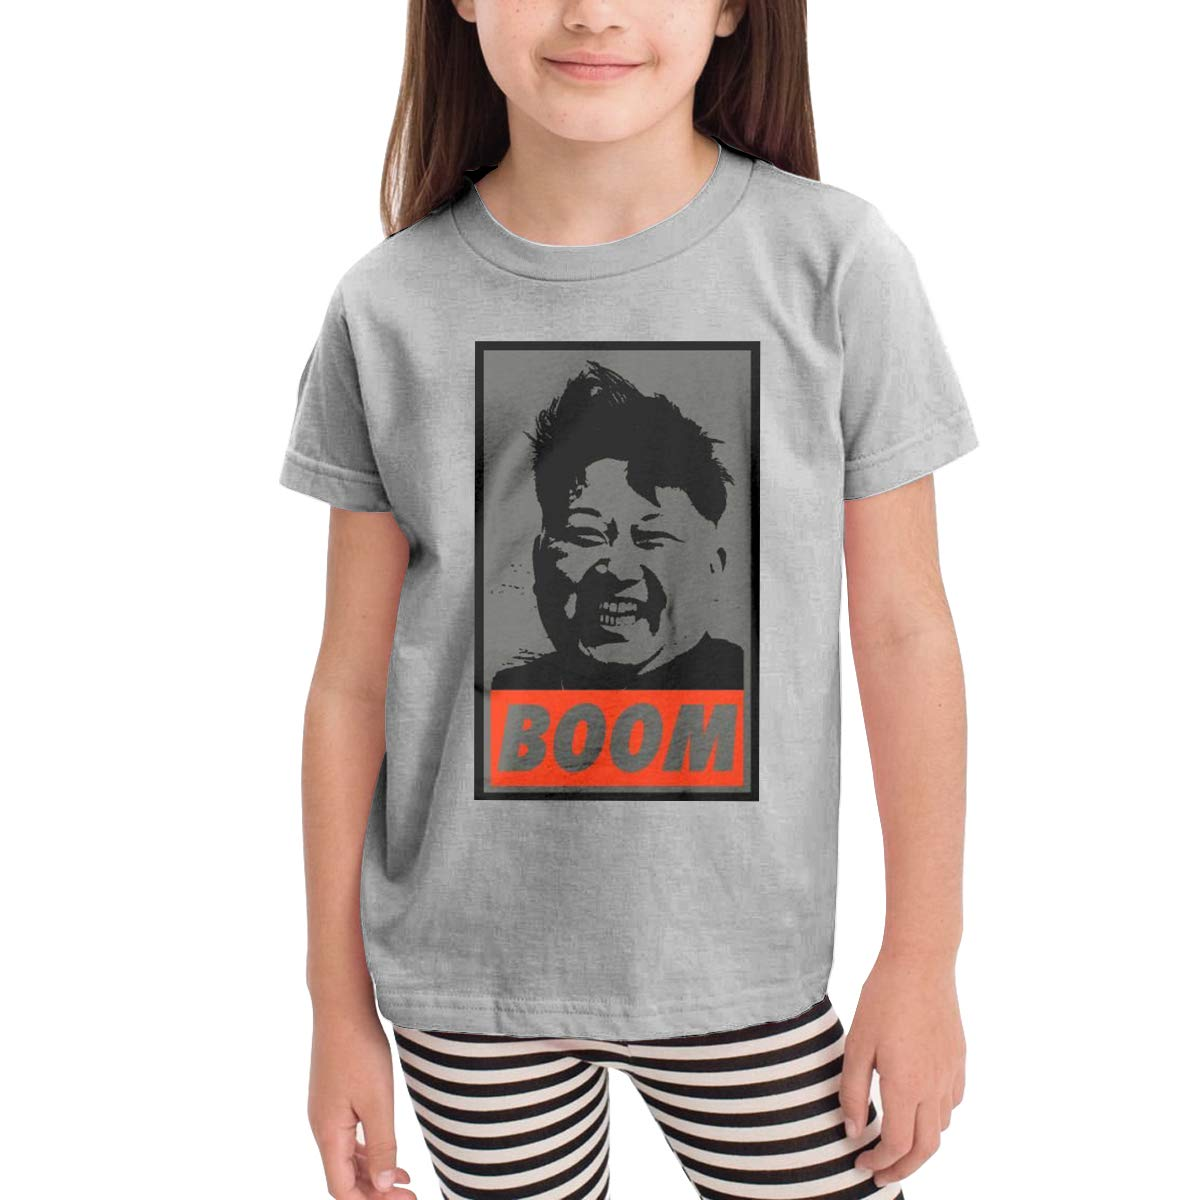 Patricia FordT 6-24 Month Baby T-Shirt Loose Self-Cultivation 2-6 Year Old Childrens T-Shirt Kim Jong Un Boom Logo Gray